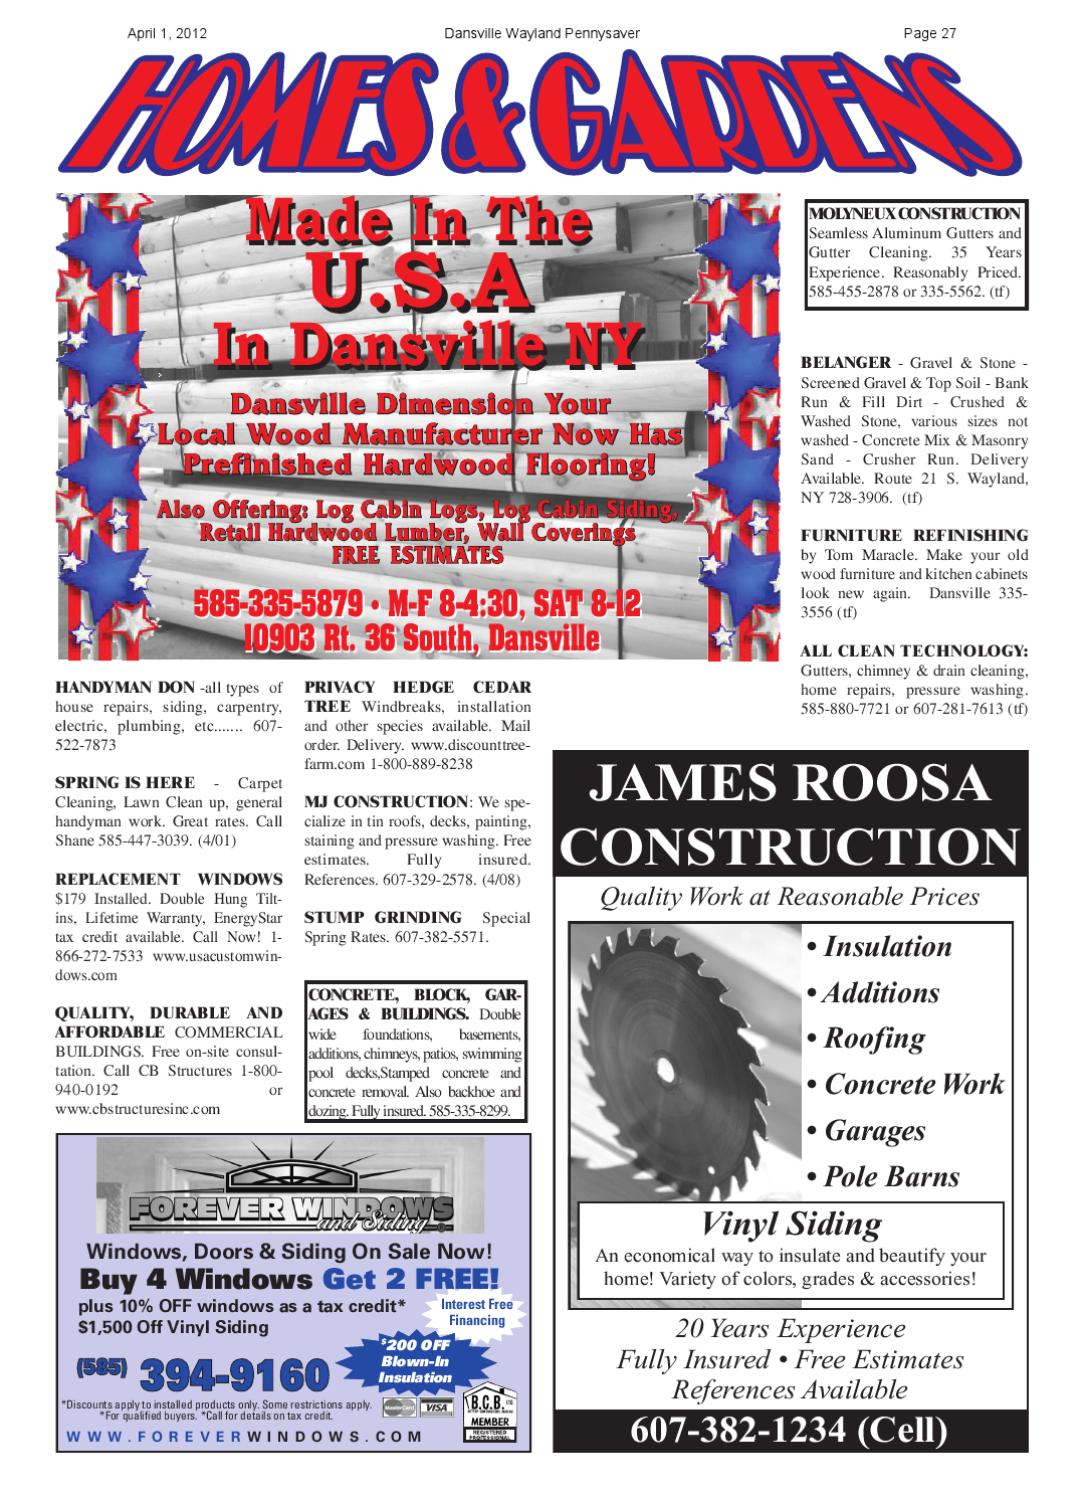 April 1, 2012 by Dansville-Wayland PennySaver - issuu